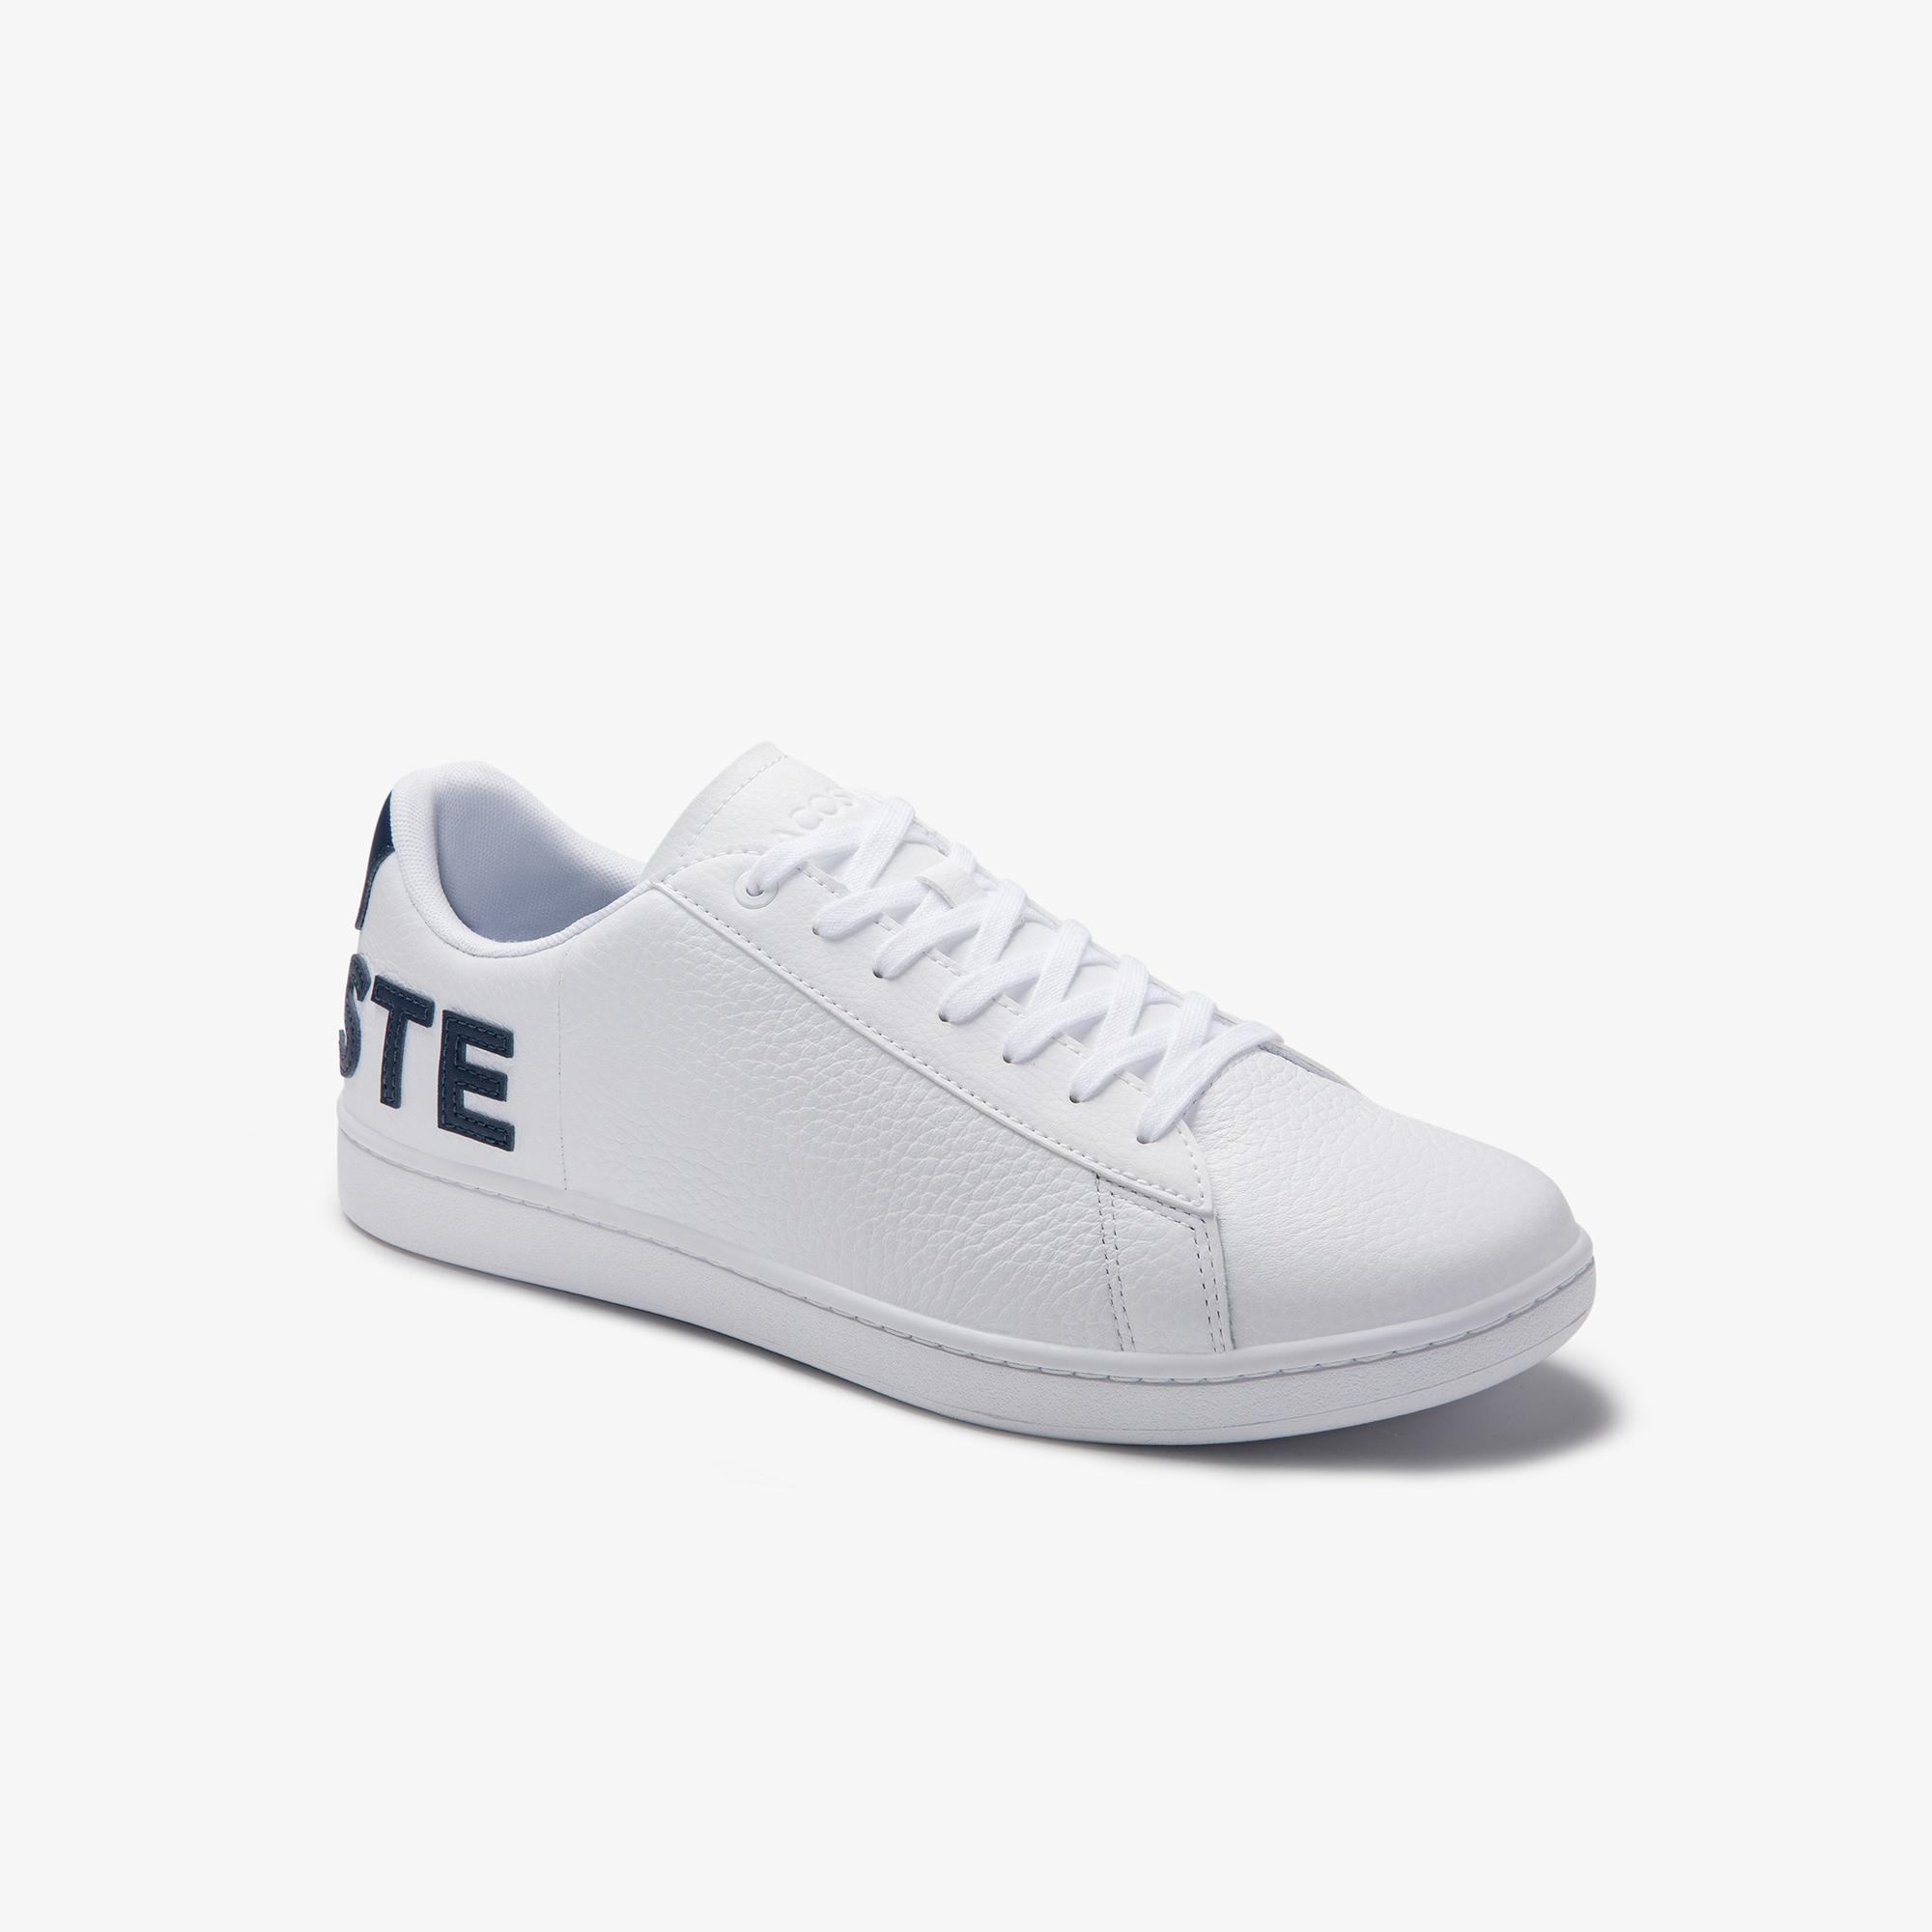 Lacoste Men's Carnaby Evo 120 7 Us Sma Sneakers